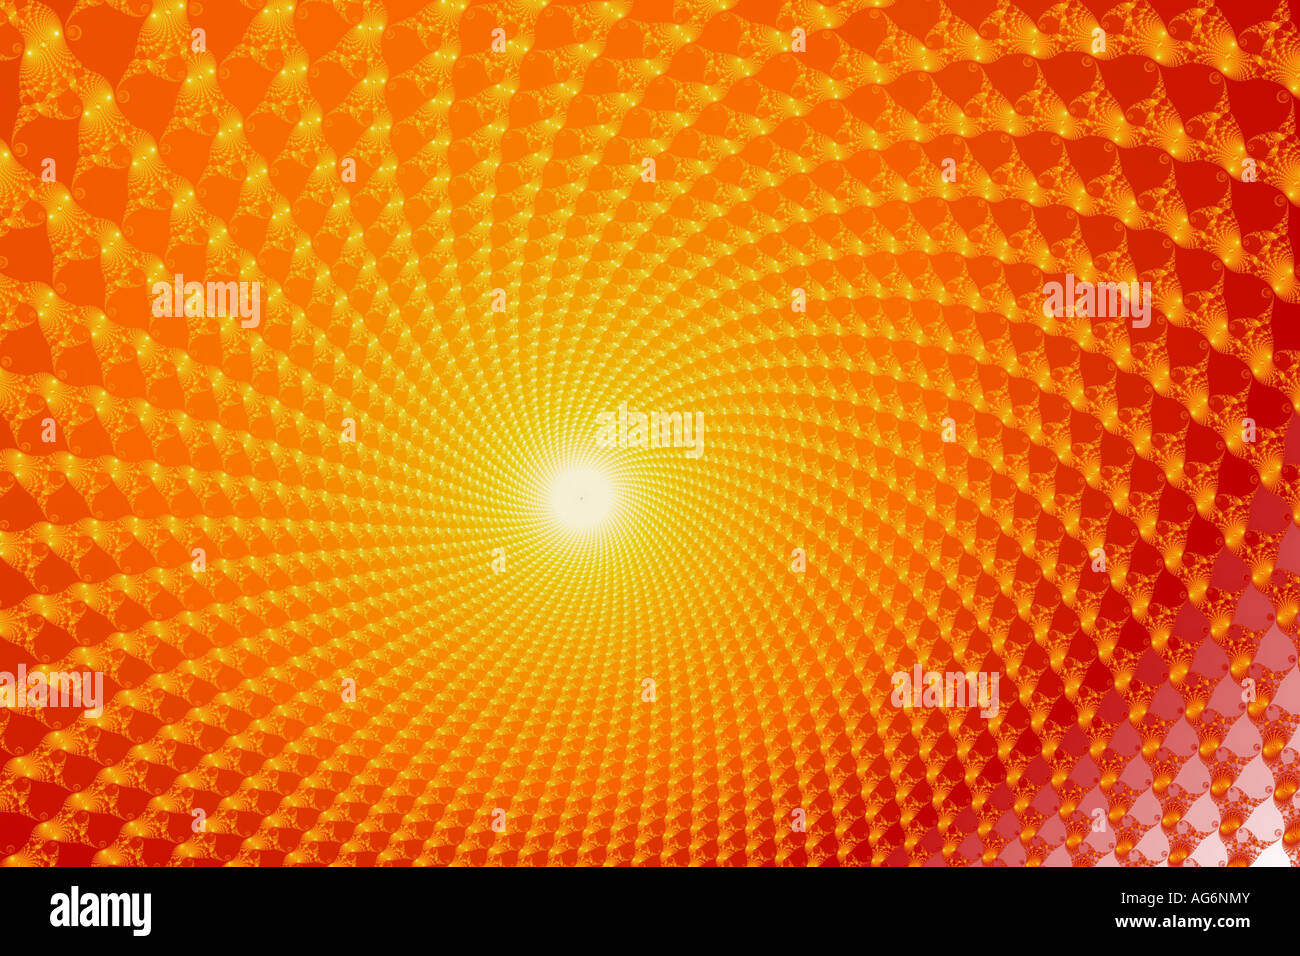 Here comes the fractal sun! Stock Photo